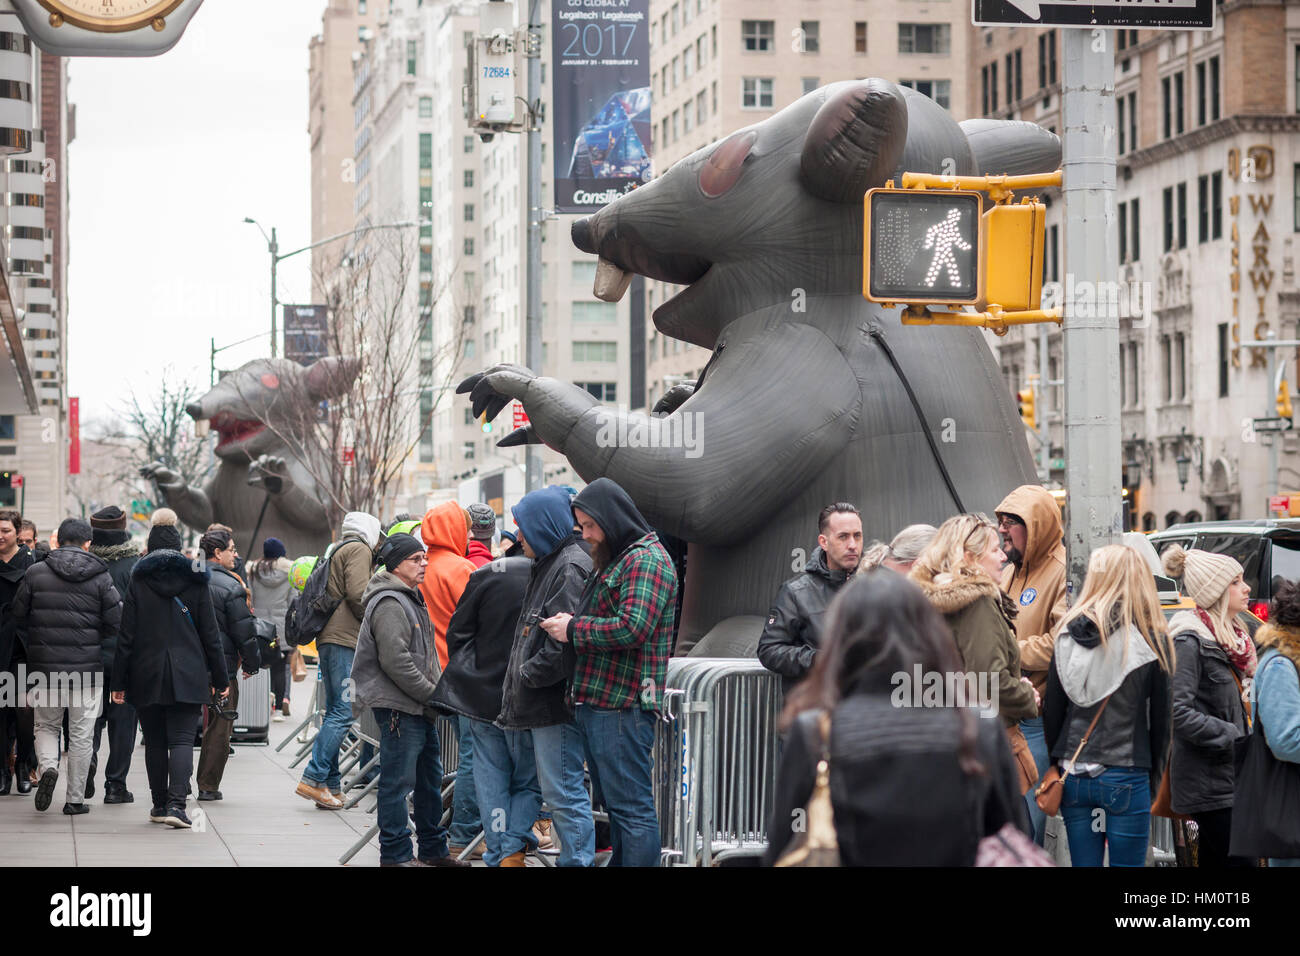 Not one, but two inflatable union rats terrorize passer-by and visitors to the New York Hilton hotel on Friday, - Stock Image